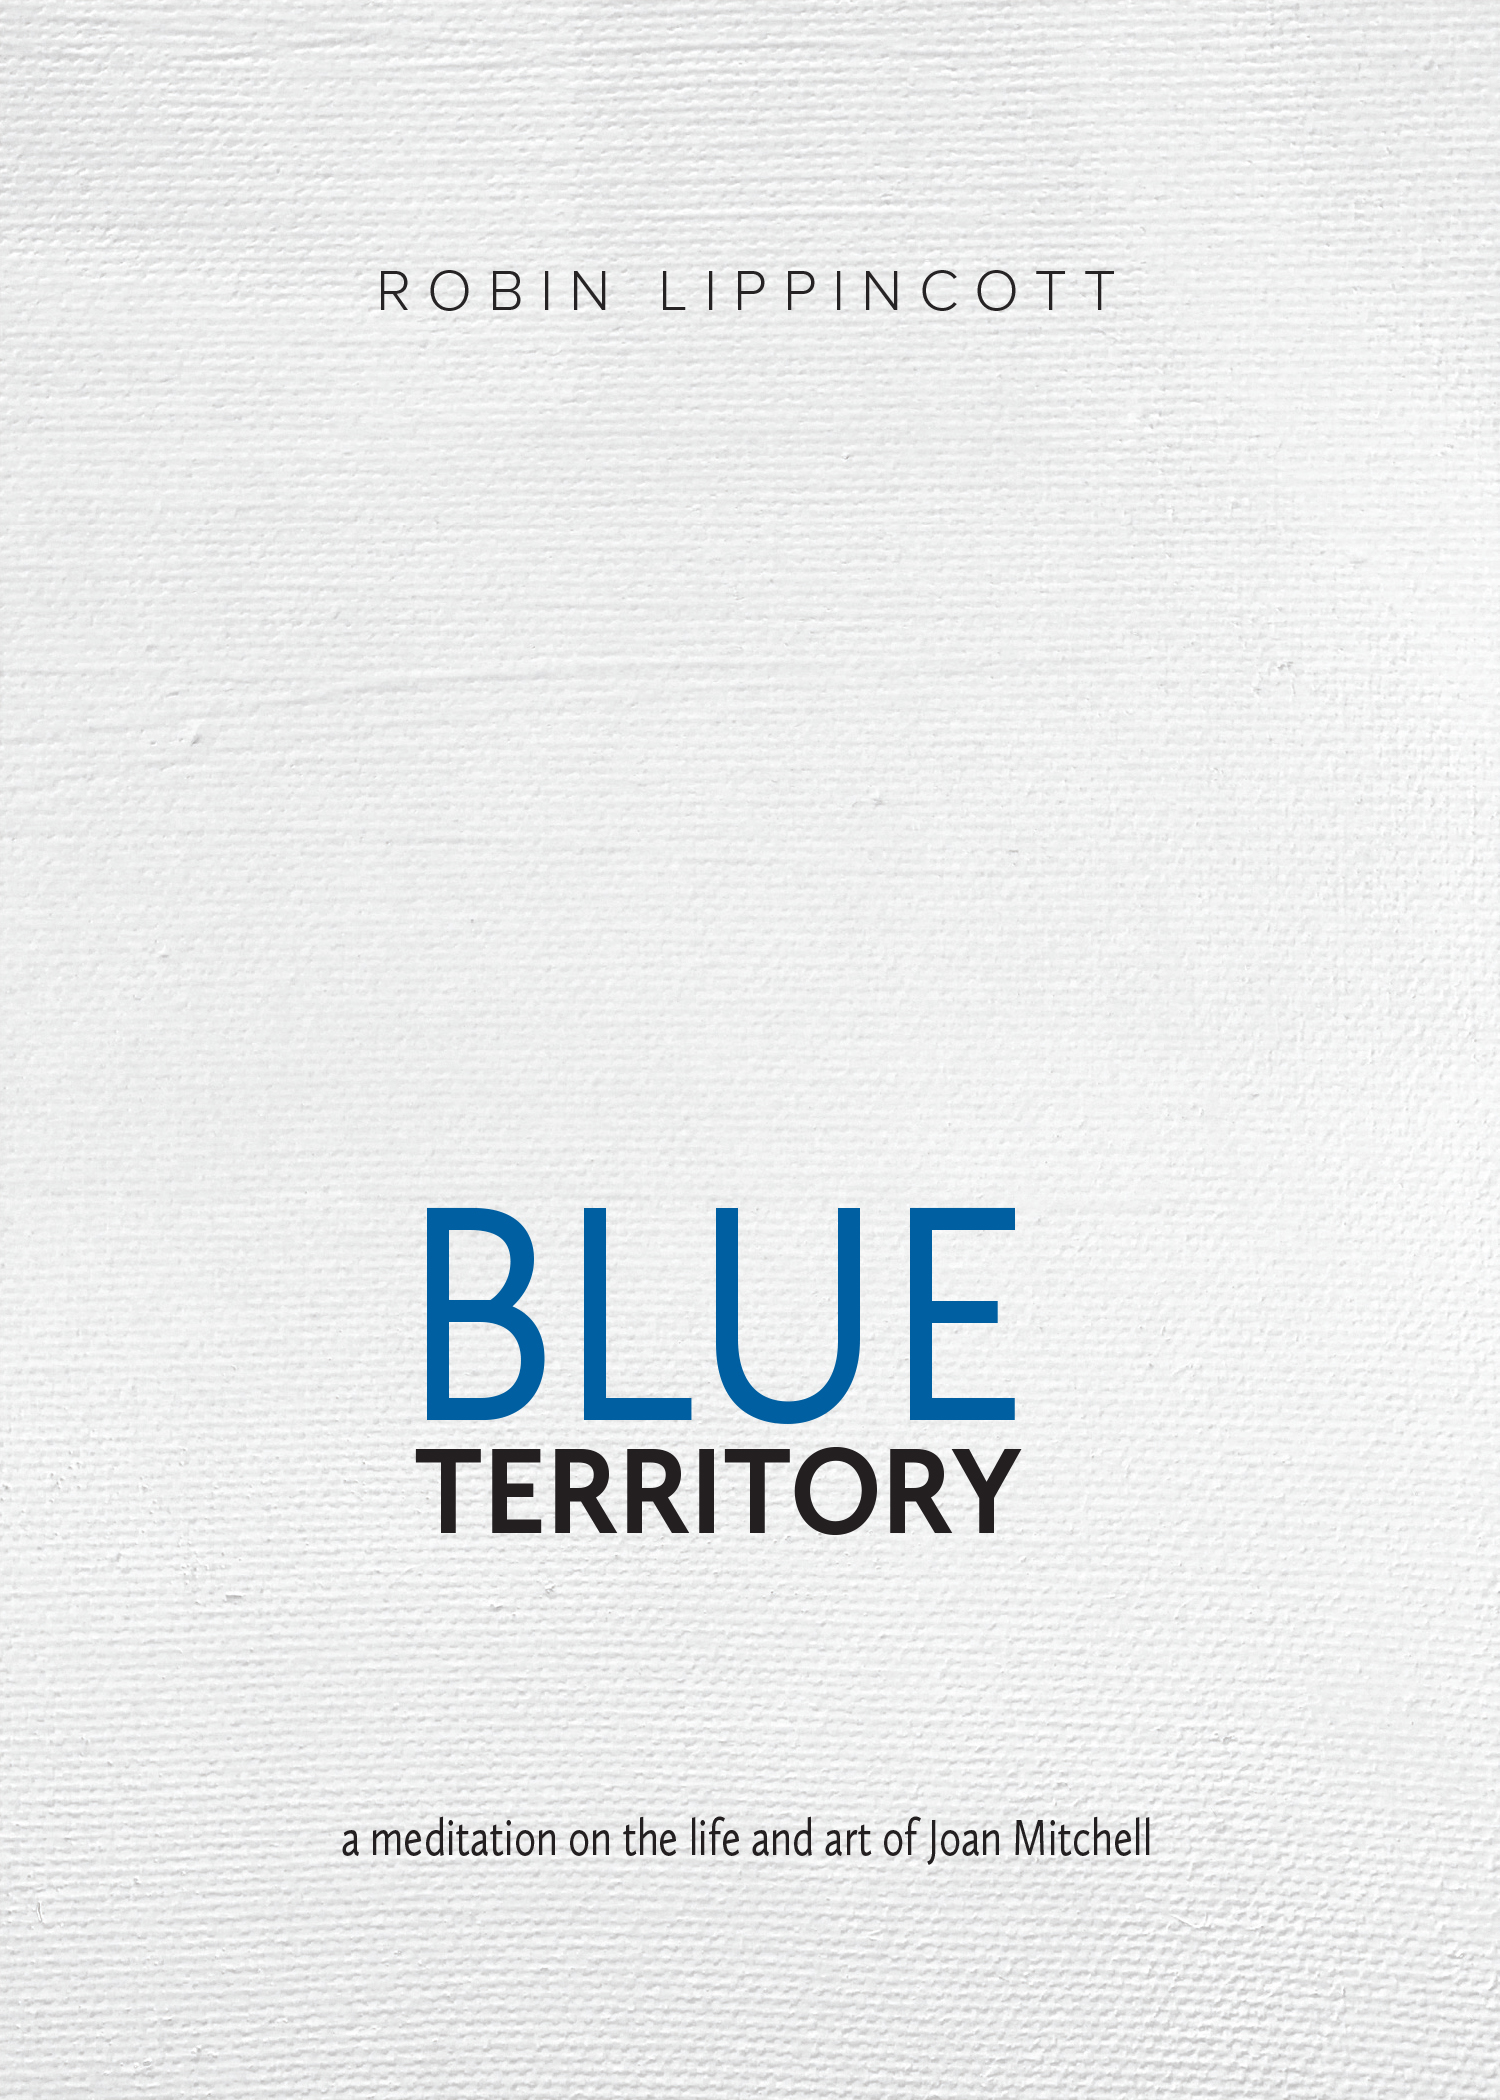 Blue Territory: a meditation on the life and art of Joan Mitchell by Robin Lippincott